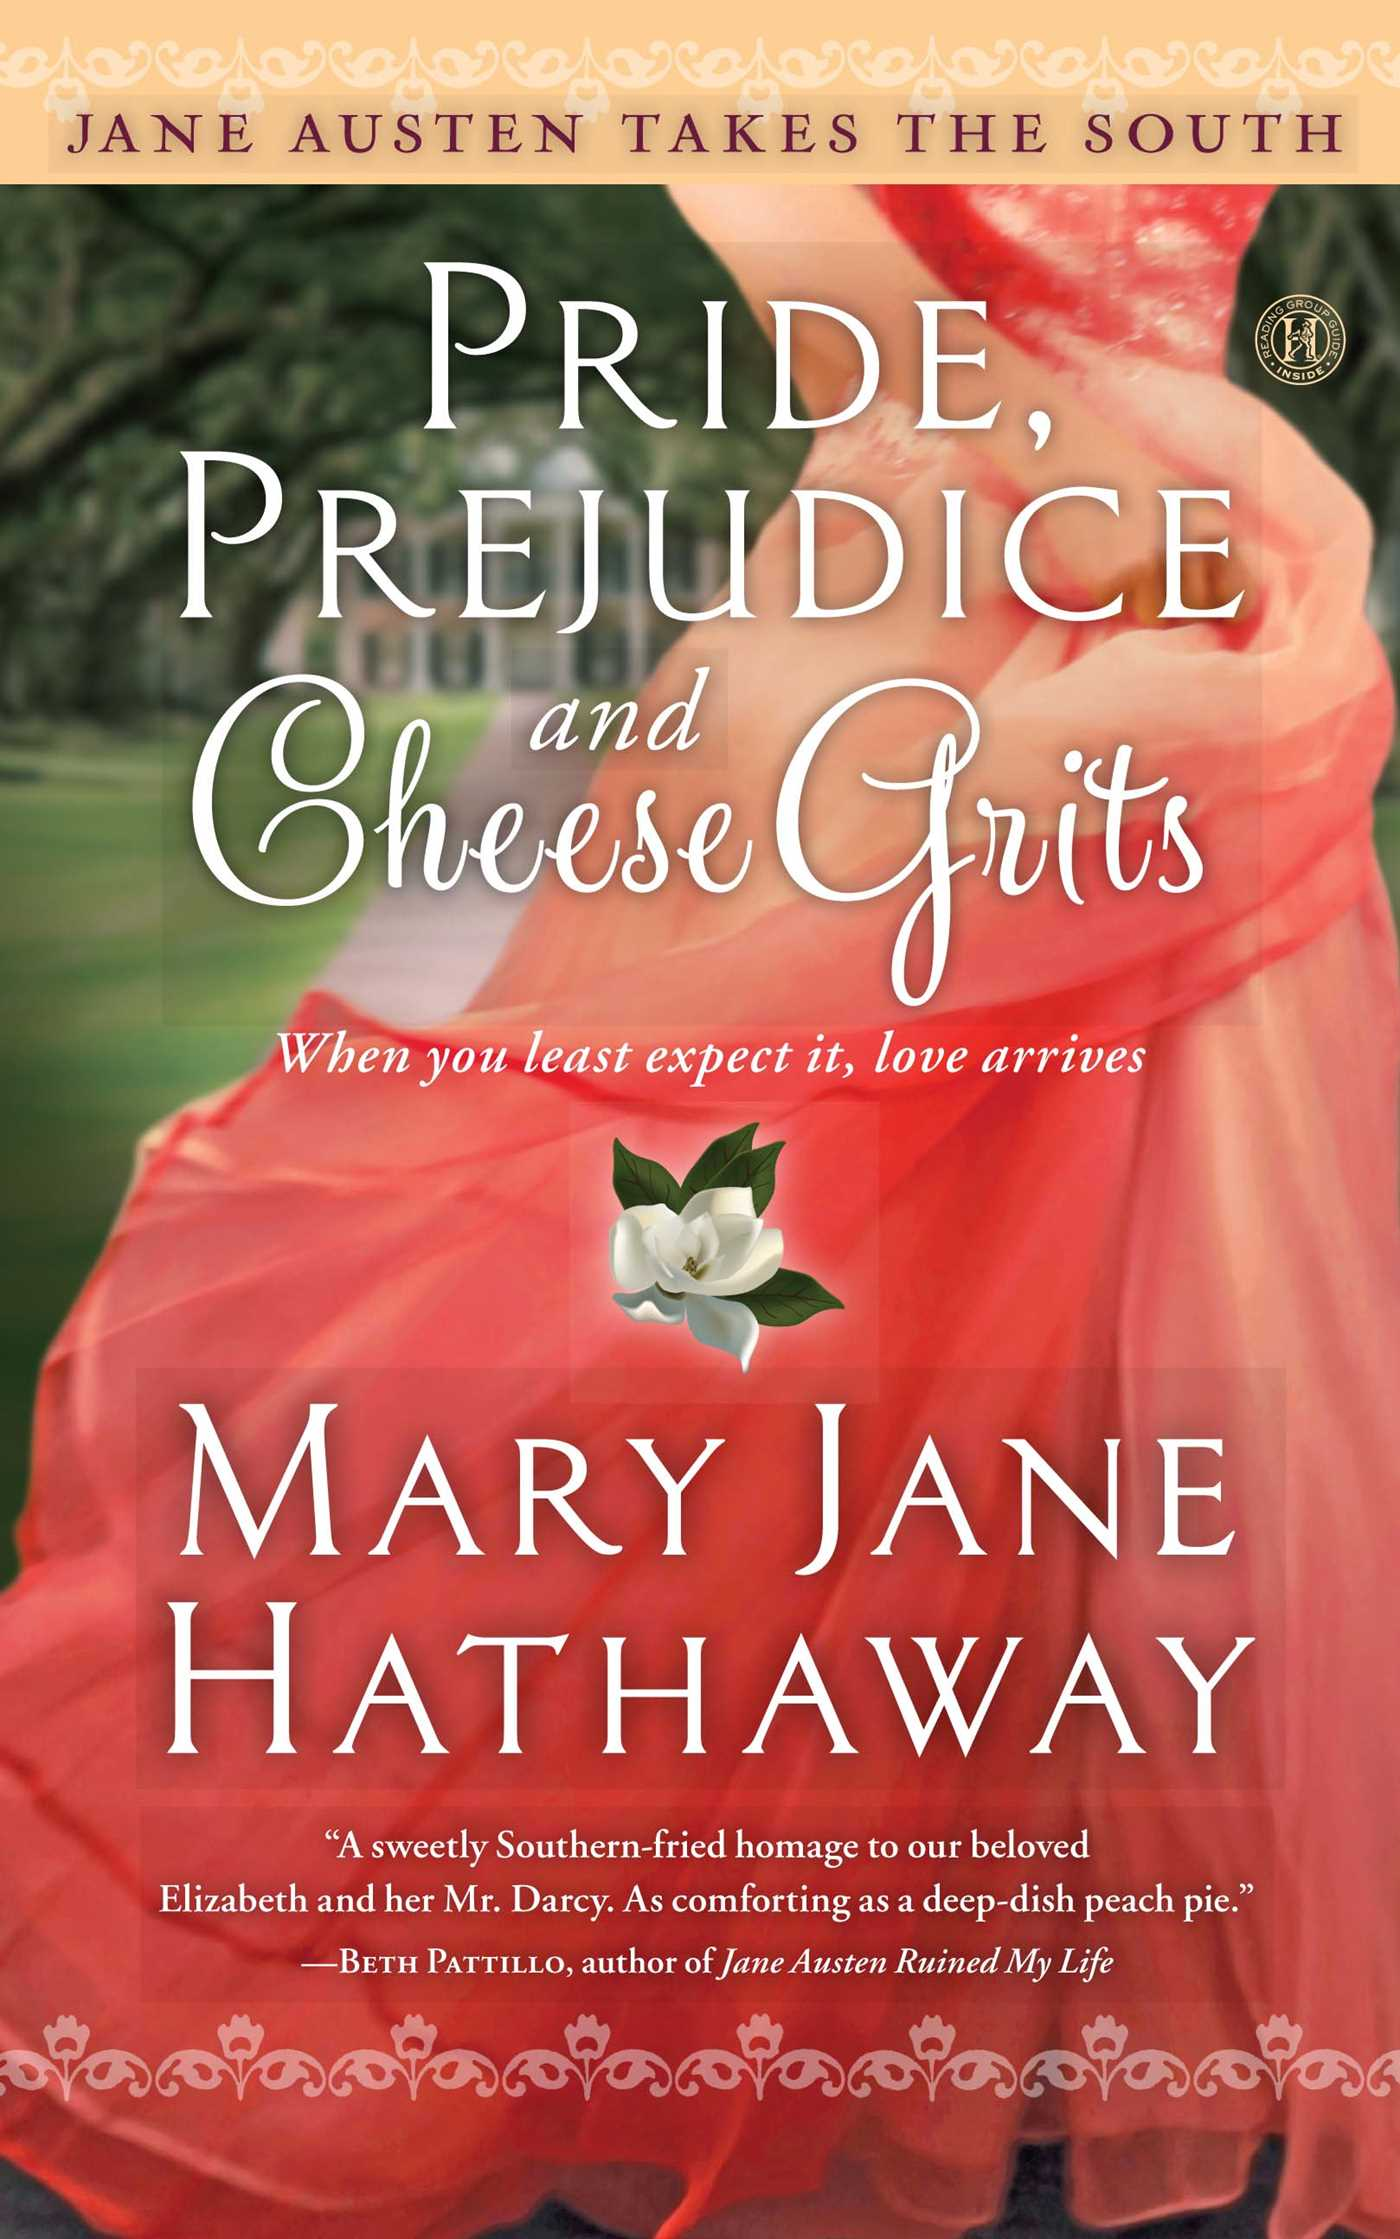 Pride-prejudice-and-cheese-grits-9781476777504_hr